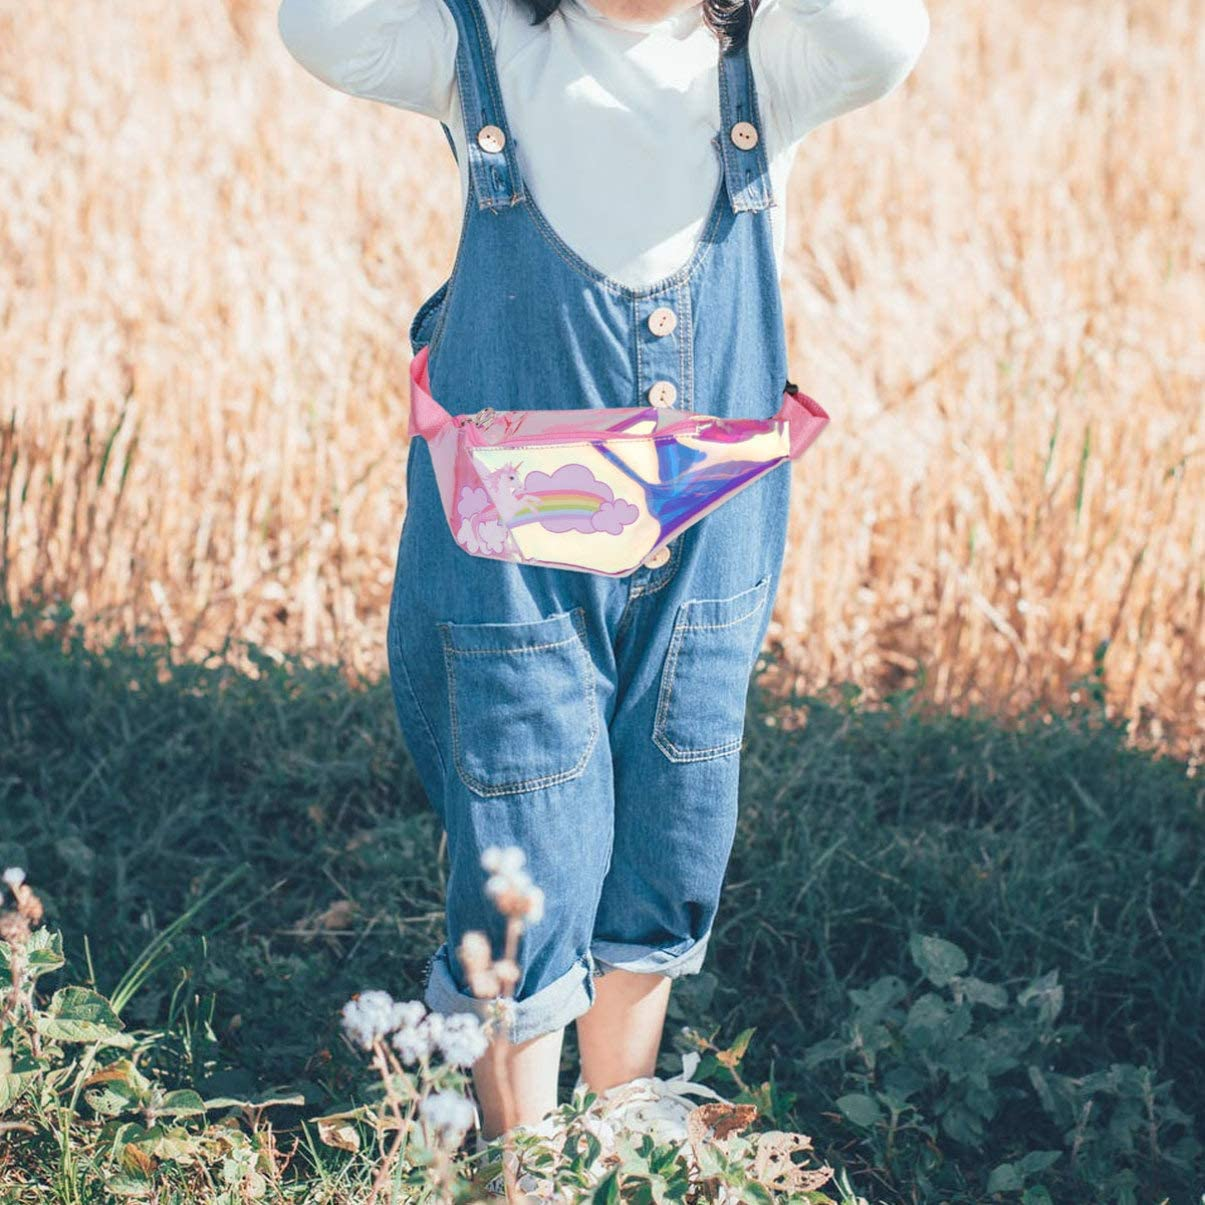 Pink TENDYCOCO Fanny Pack Kids Holographic Chest Bag Translucent Unicorn Waist Bag Cartoon Bumbag for Baby Kids